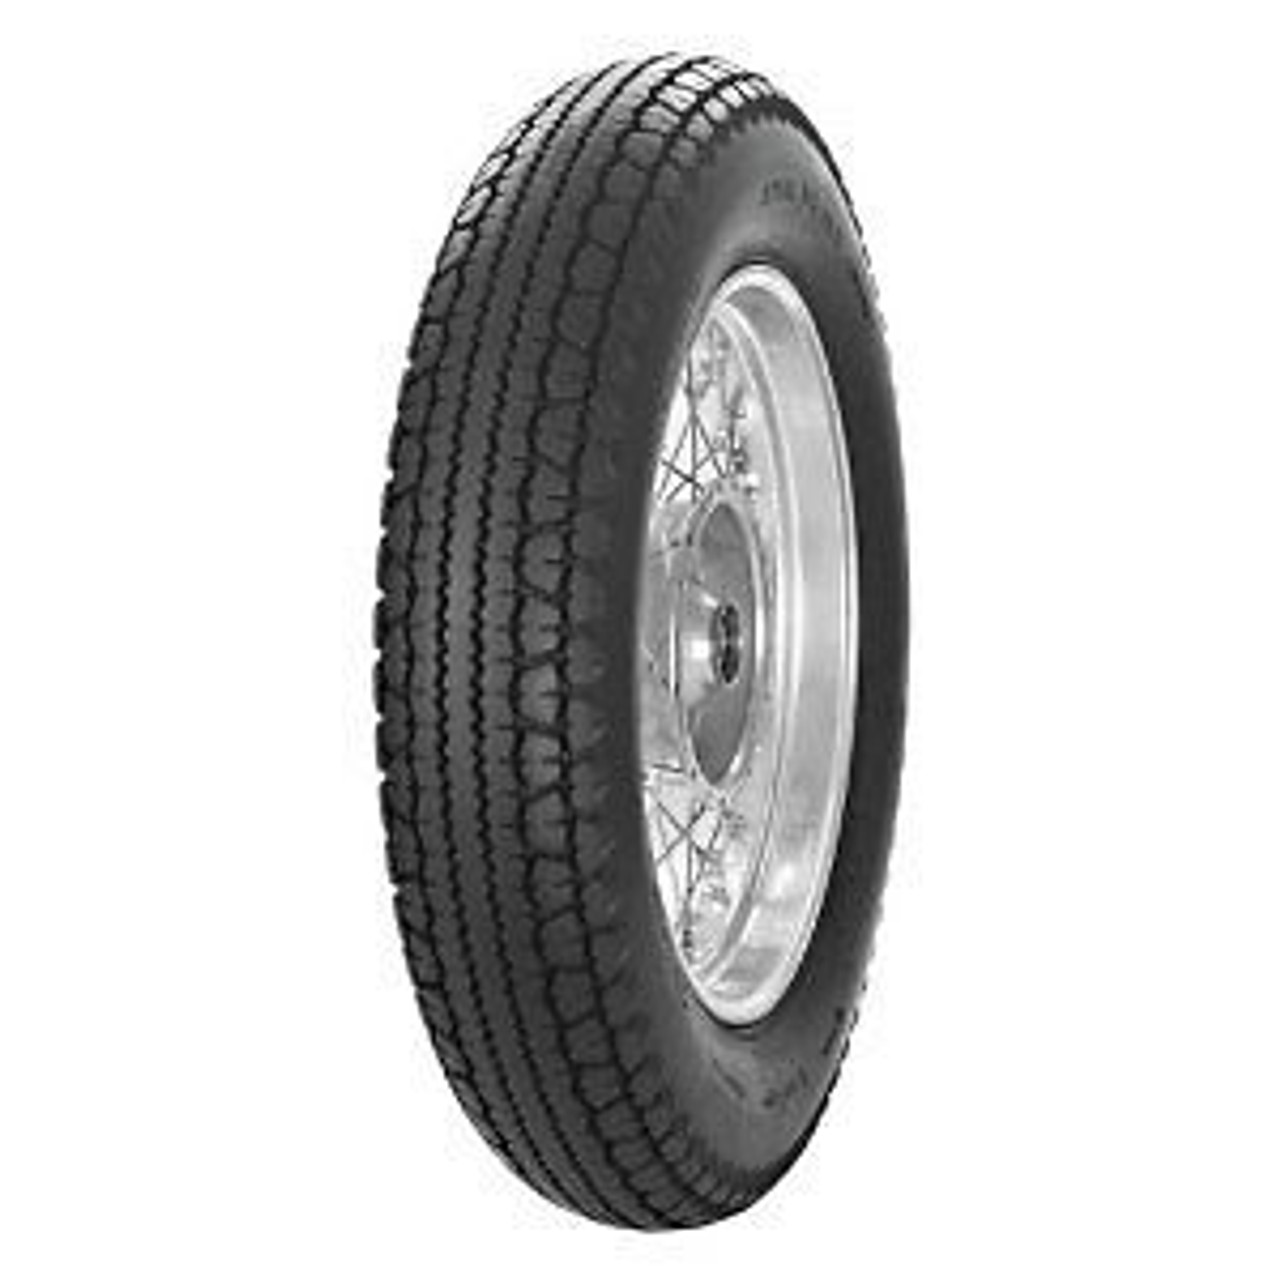 Avon Motorcycle Tires >> Avon Tyres Am7 Safety Mileage Mark 2 Rear Motorcycle Tire 5 00 16